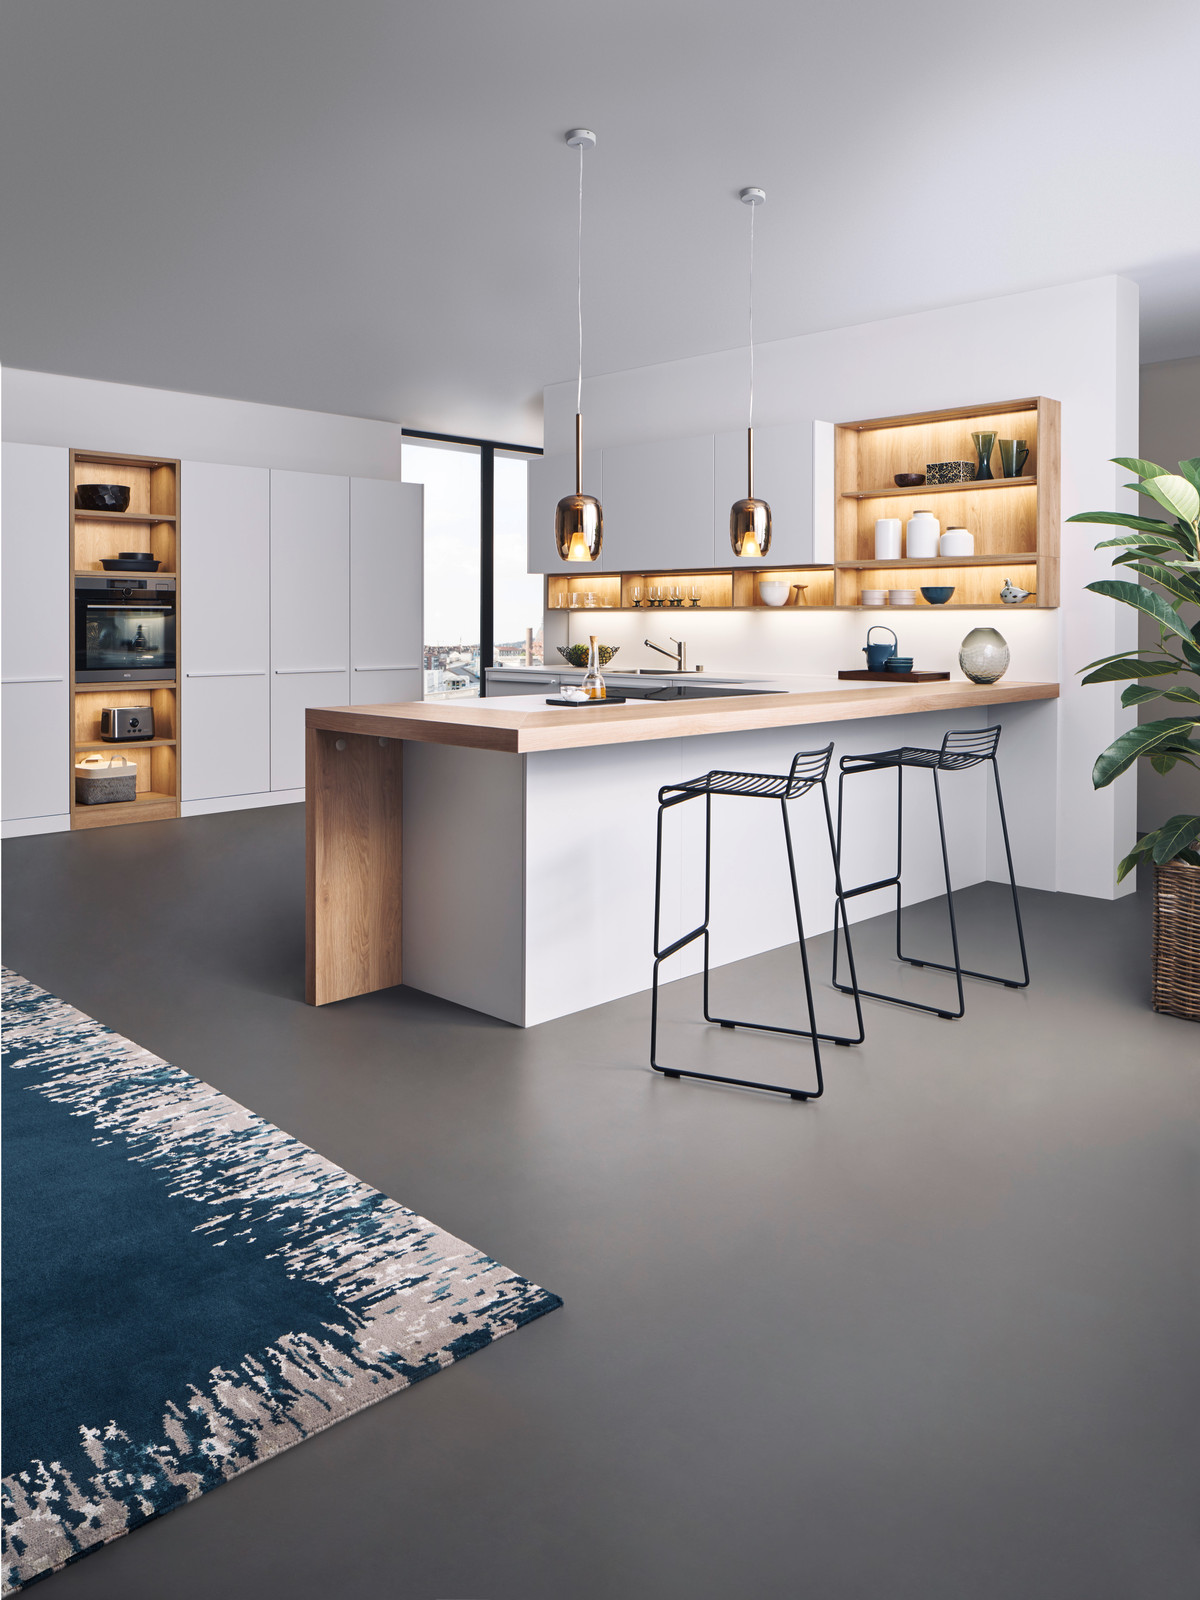 A Calm Kitchen Architecture Open To The Living Area As Well As Perfectly  Functional Details U2013 These Are The Characteristics Of A LEICHT Kitchen.